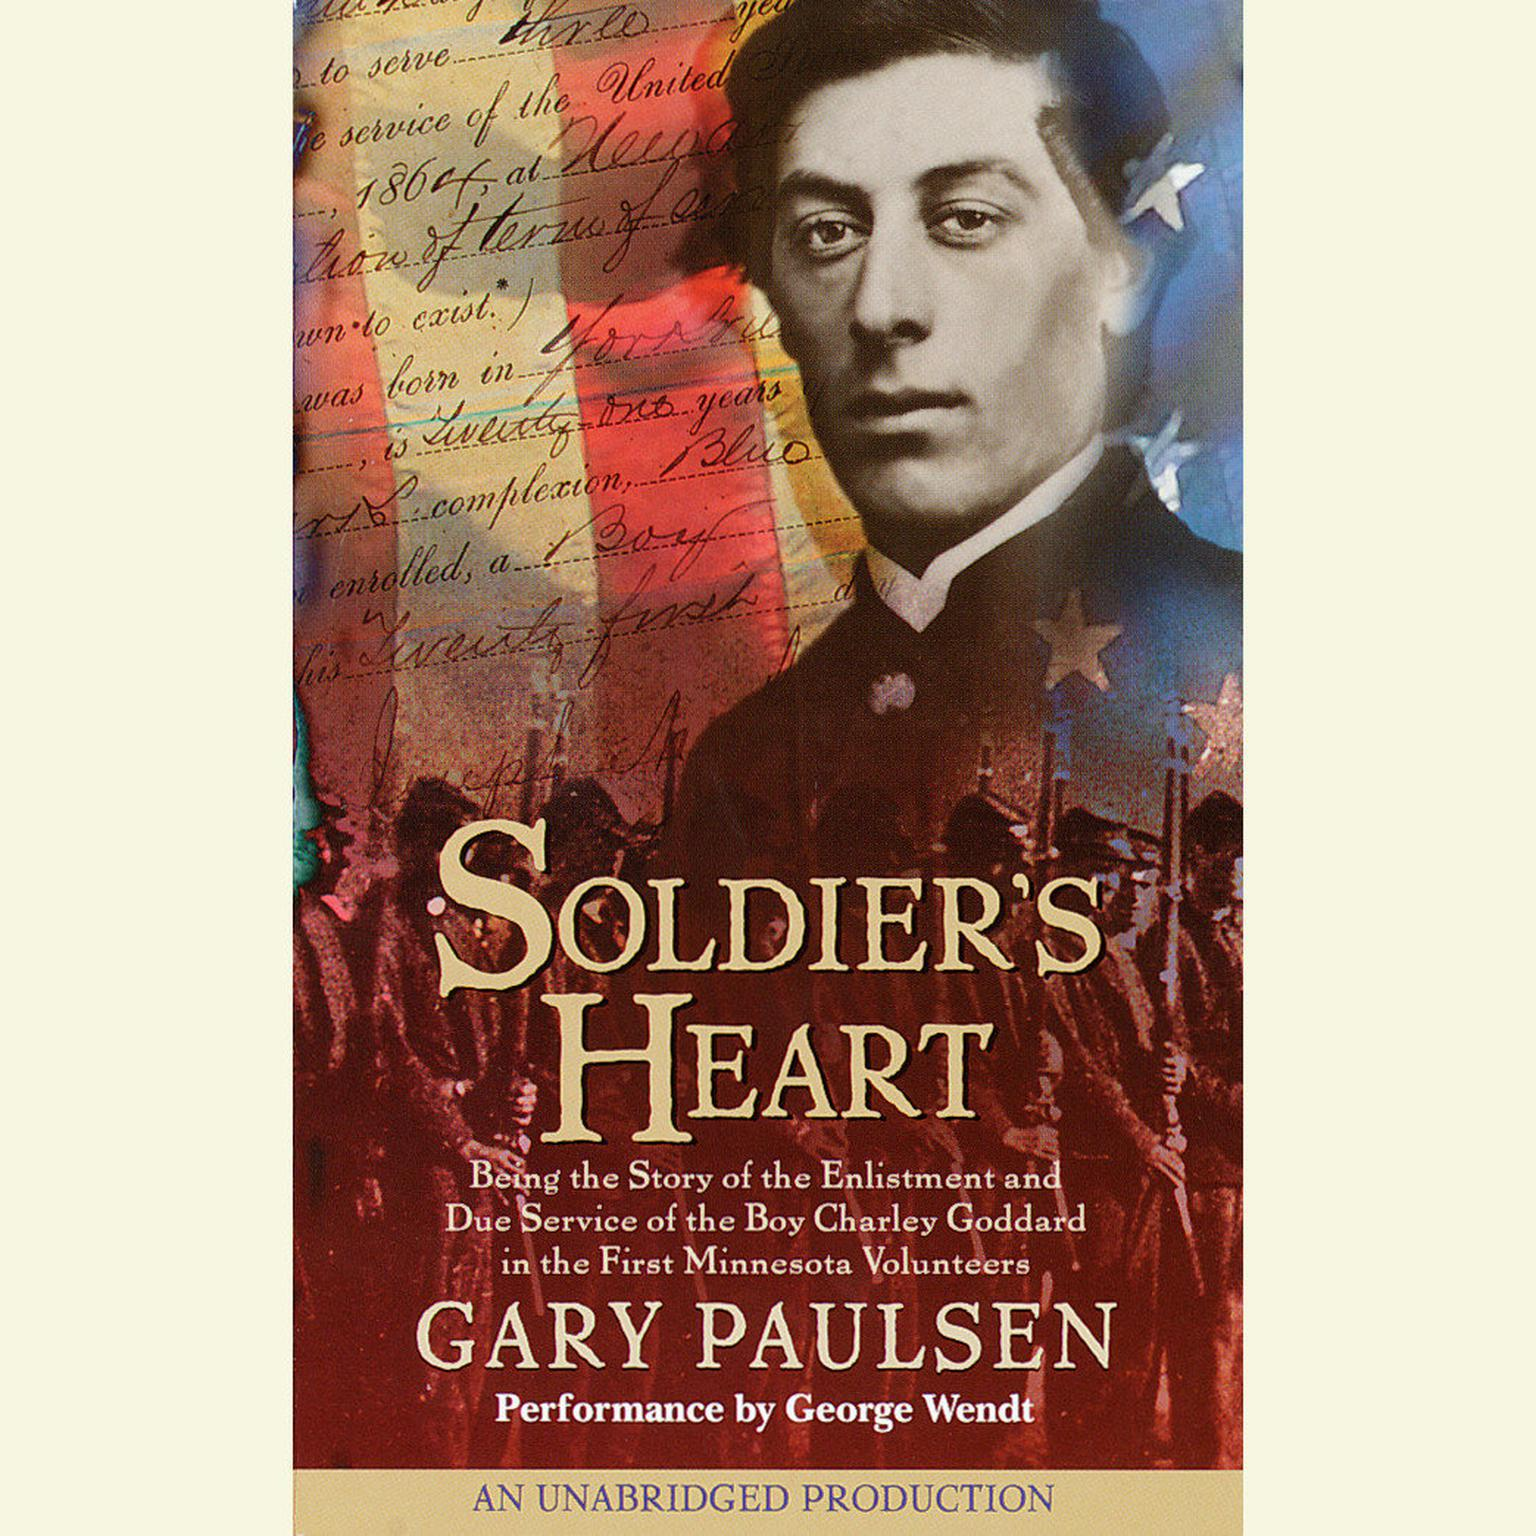 Printable Soldier's Heart: Being the Story of the Enlistment and Due Service of the Boy Charley Goddard in the First Minnesota Volunteers Audiobook Cover Art